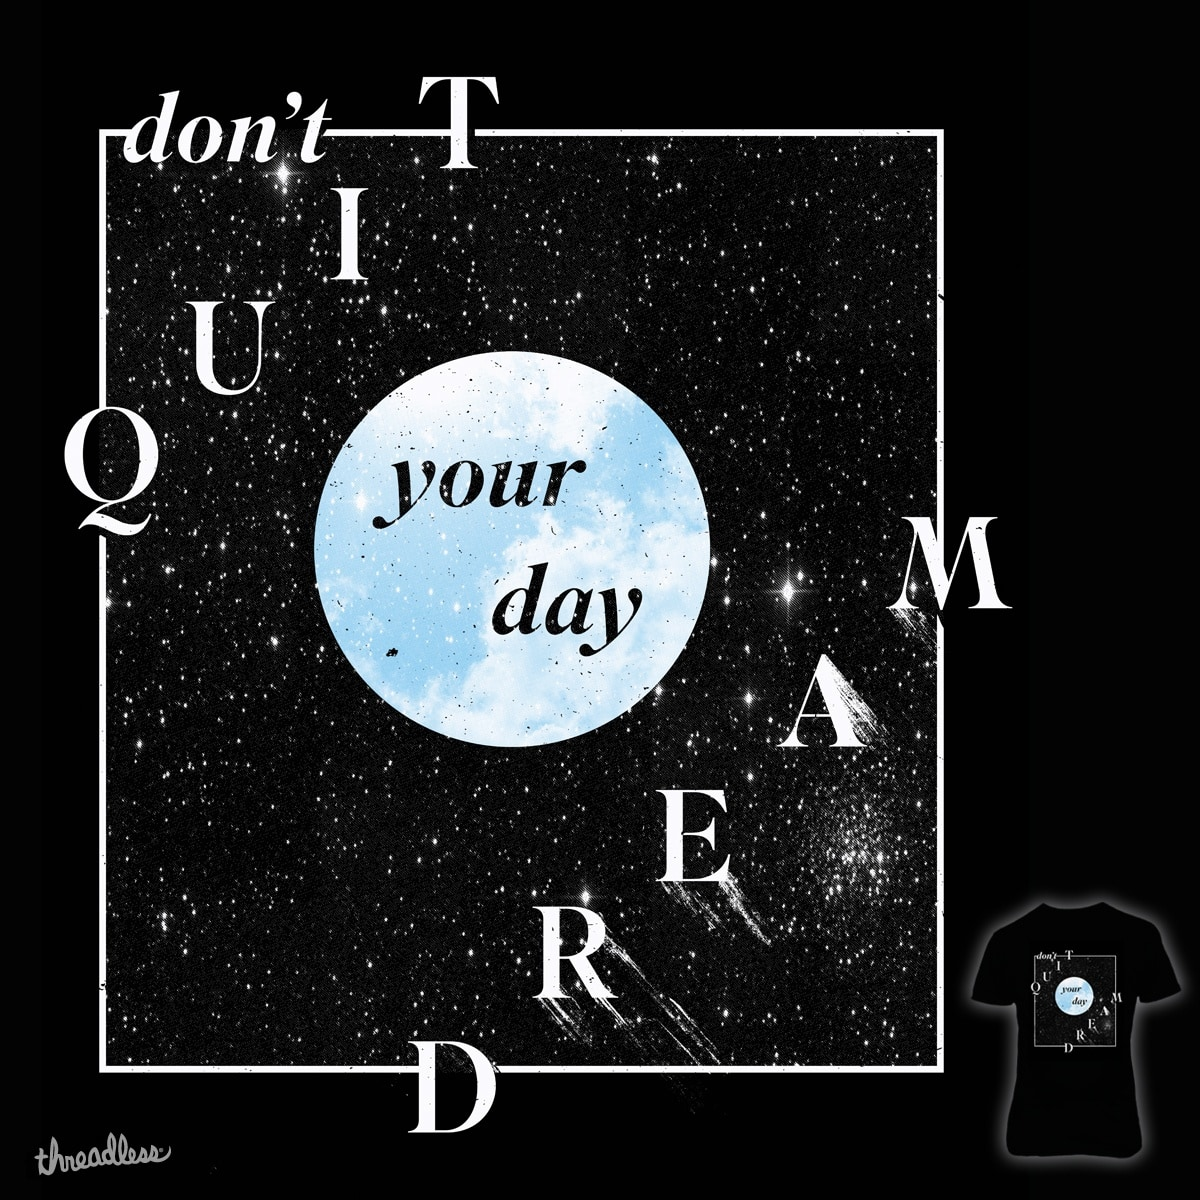 Don't quit your daydream by campkatie on Threadless